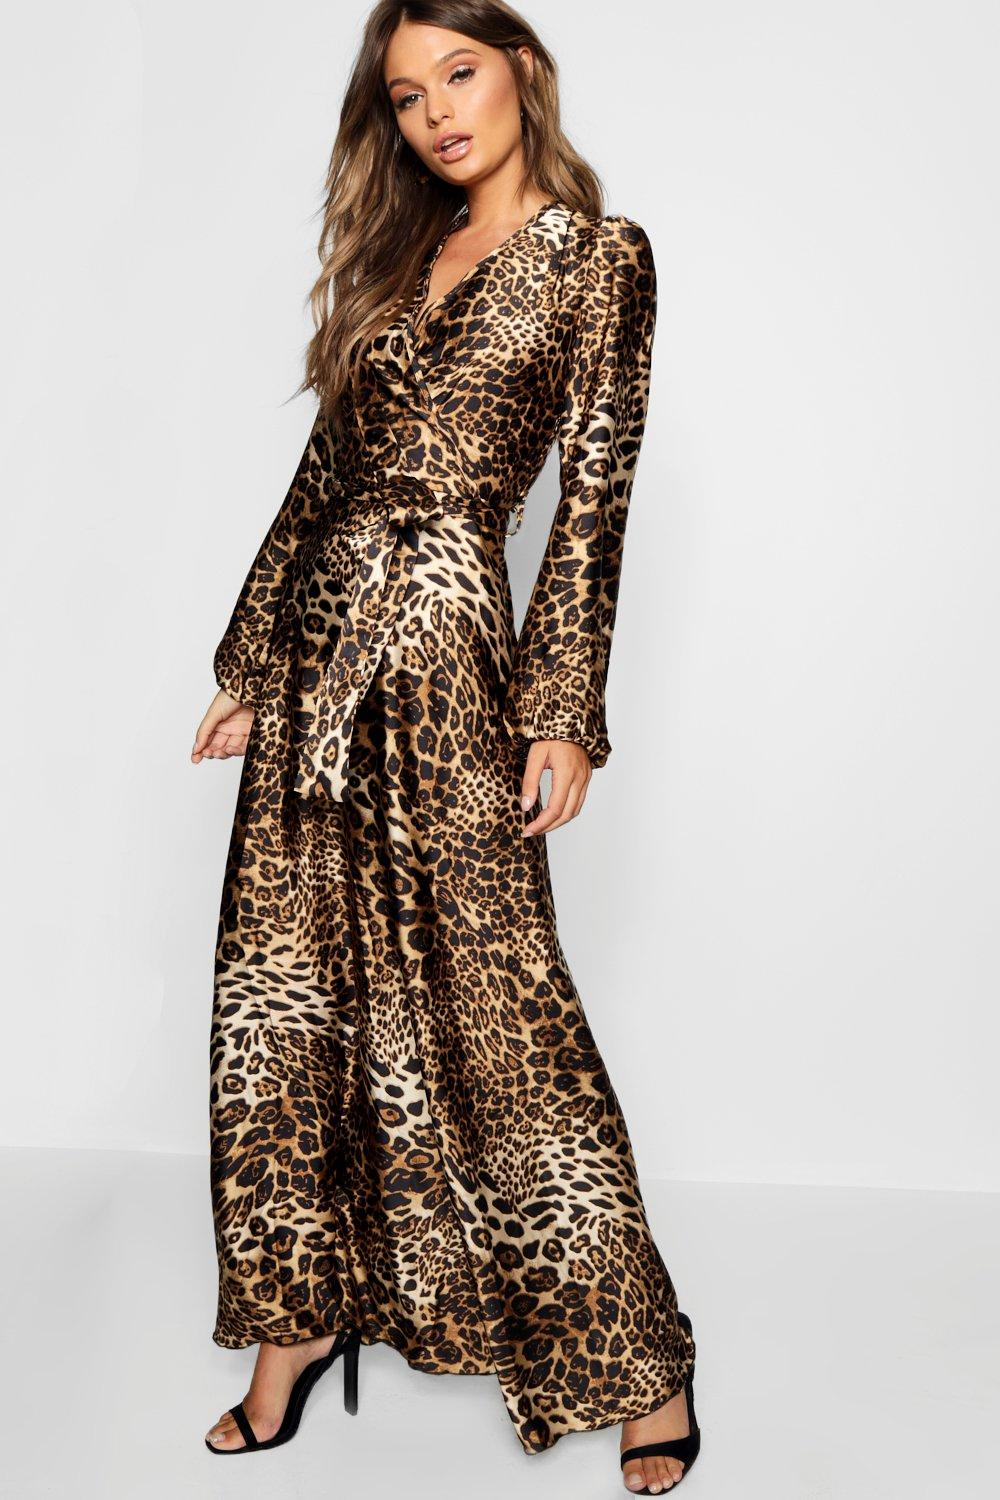 5f6a0ff5b8 Womens Leopard Print Satin Maxi Dress. Hover to zoom